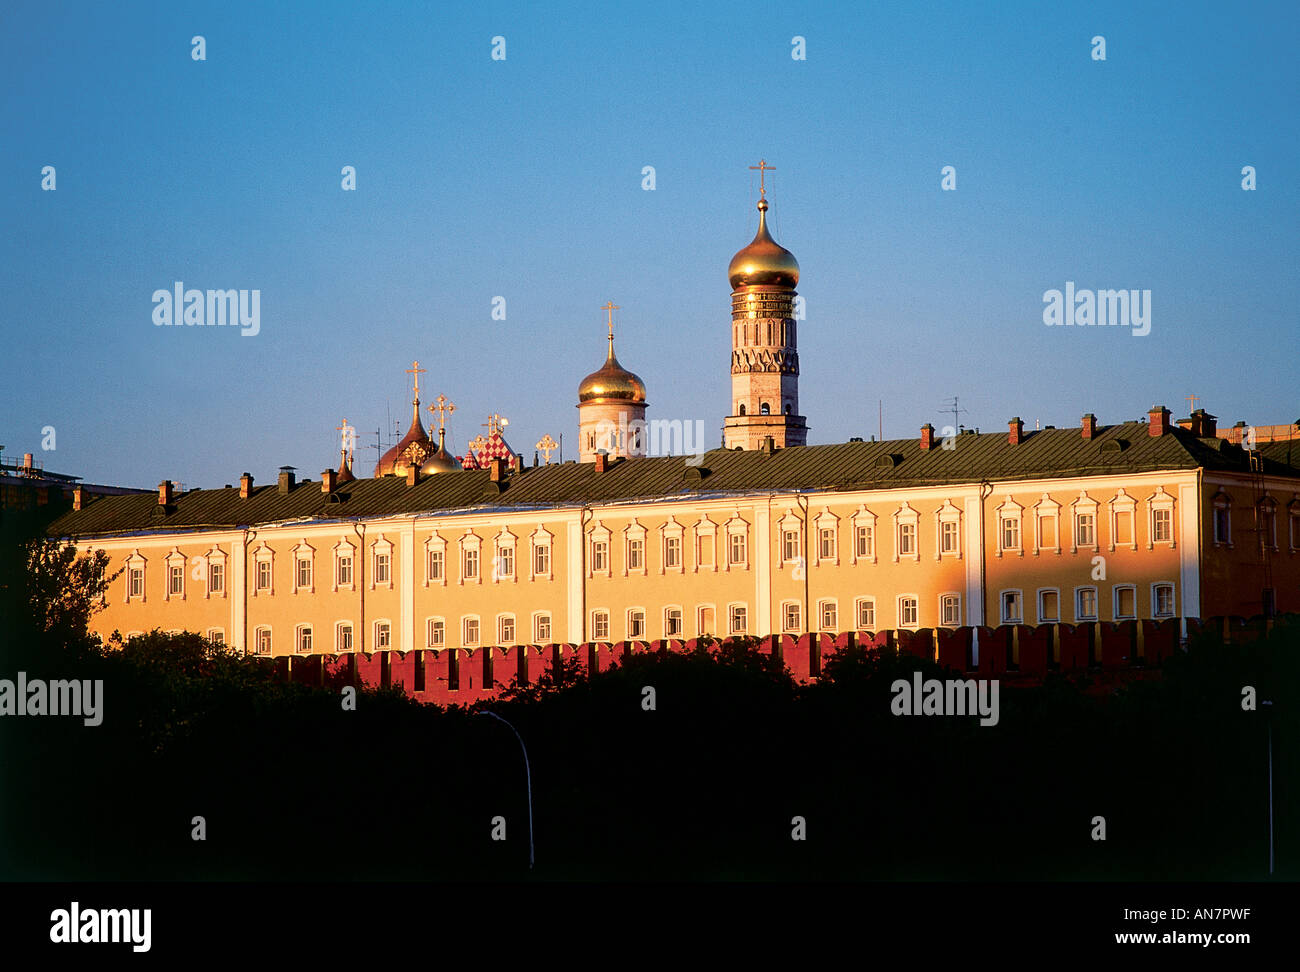 Viewed from the adjacent riverside low sun striking the facade of The Armoury commissioned by Nicholas I in 1851 as an extension to the Great Kremlin Palace Moscow - Stock Image